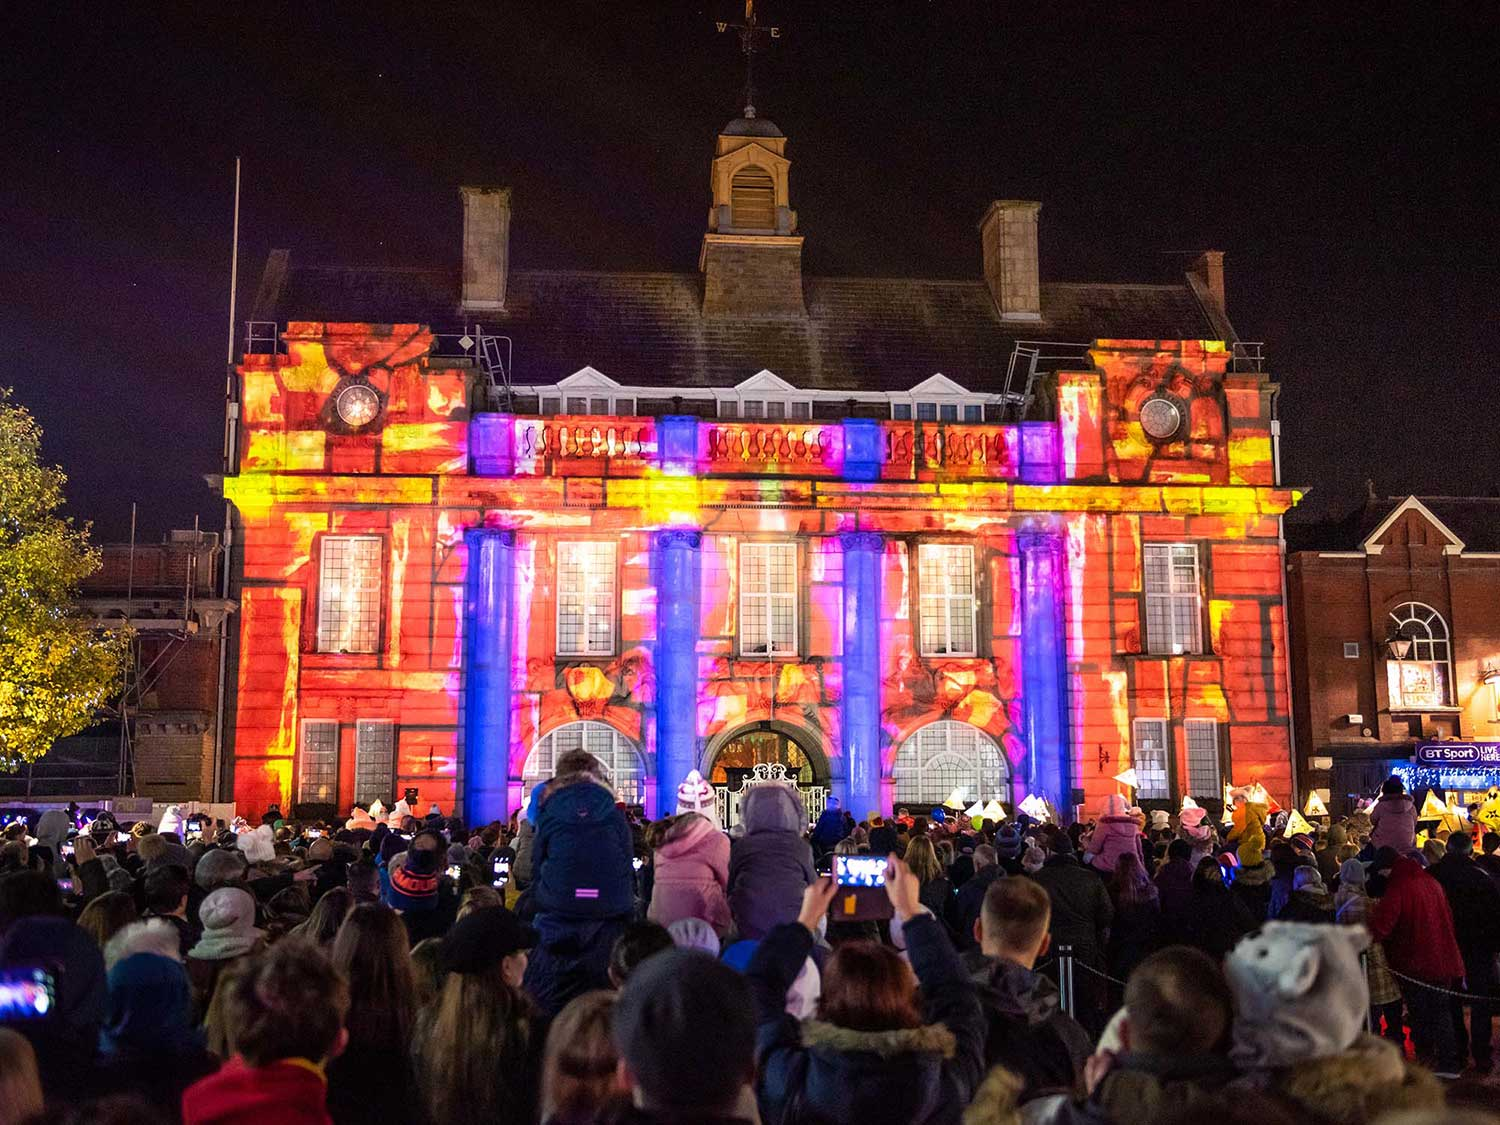 Crewe Manicipal Hall Christmas projection mapping